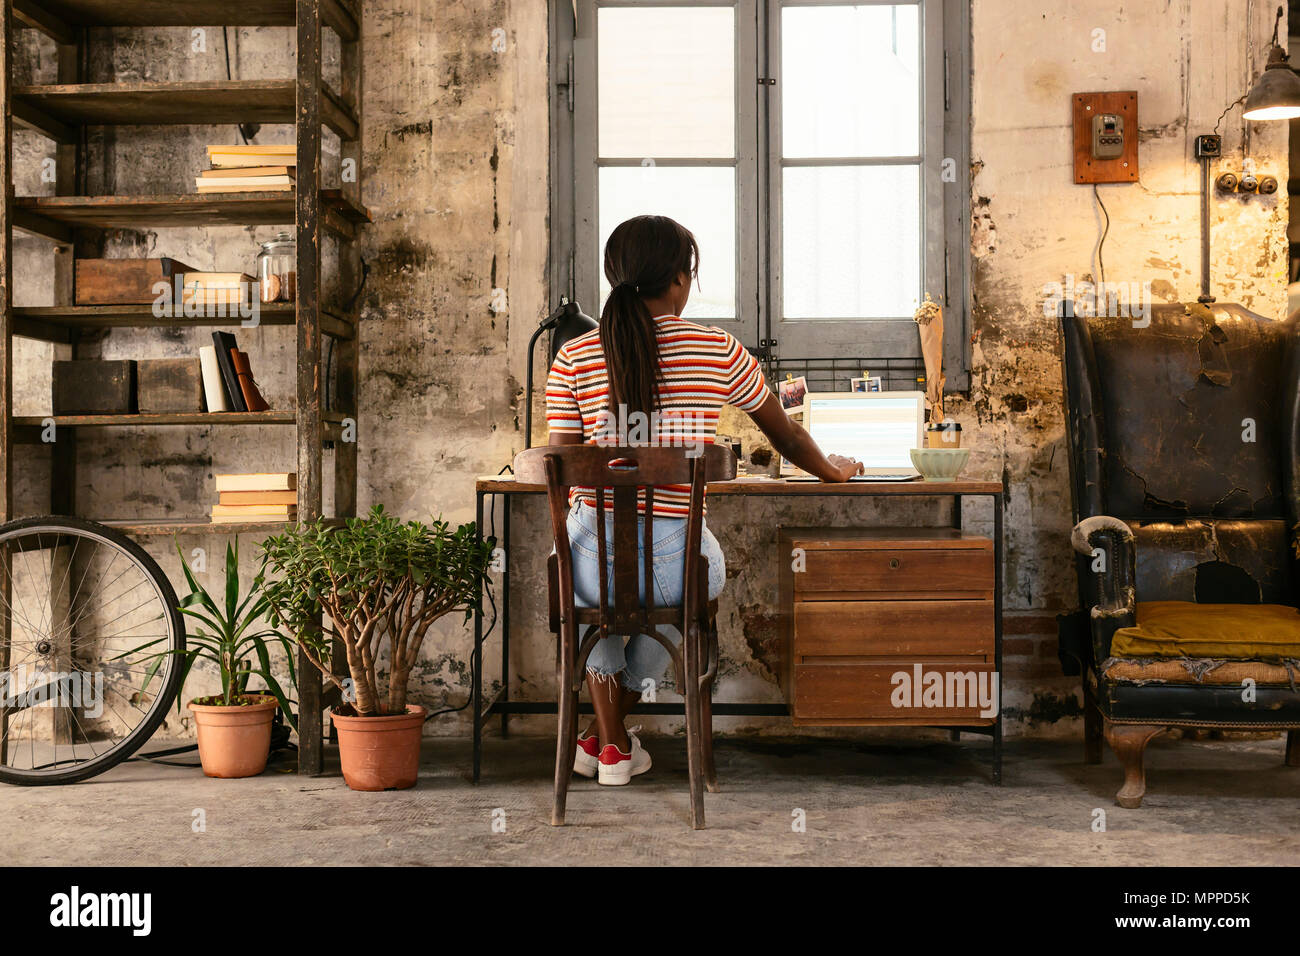 Back view of young woman sitting at desk in a loft working on laptop - Stock Image